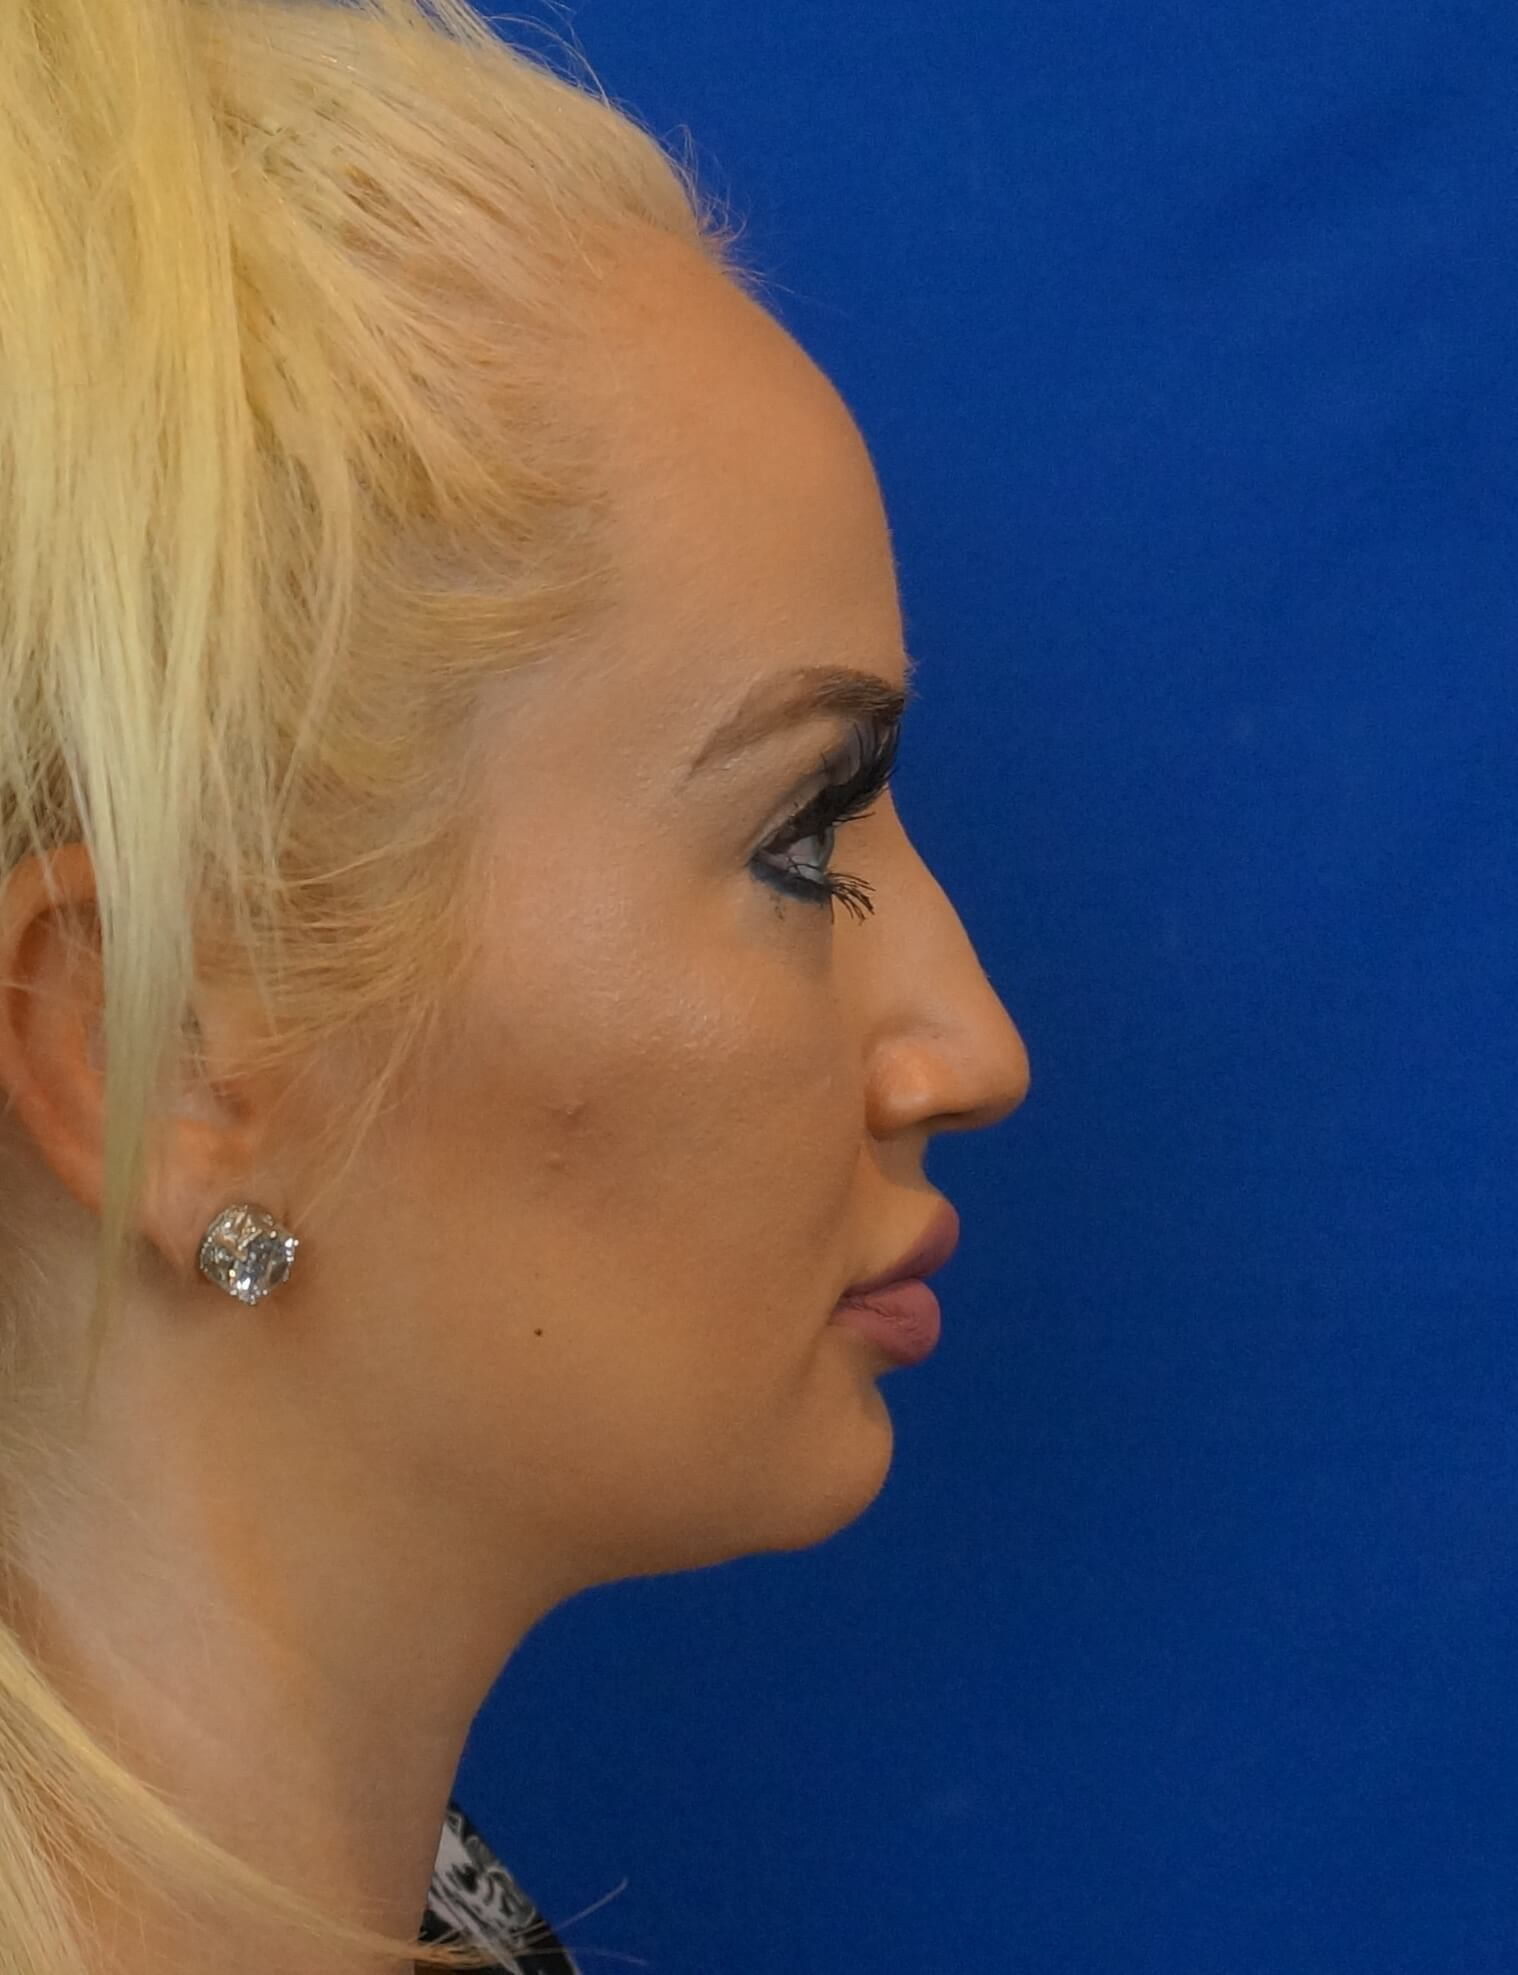 Rhinoplasty Surgeon Las Vegas Before Photo